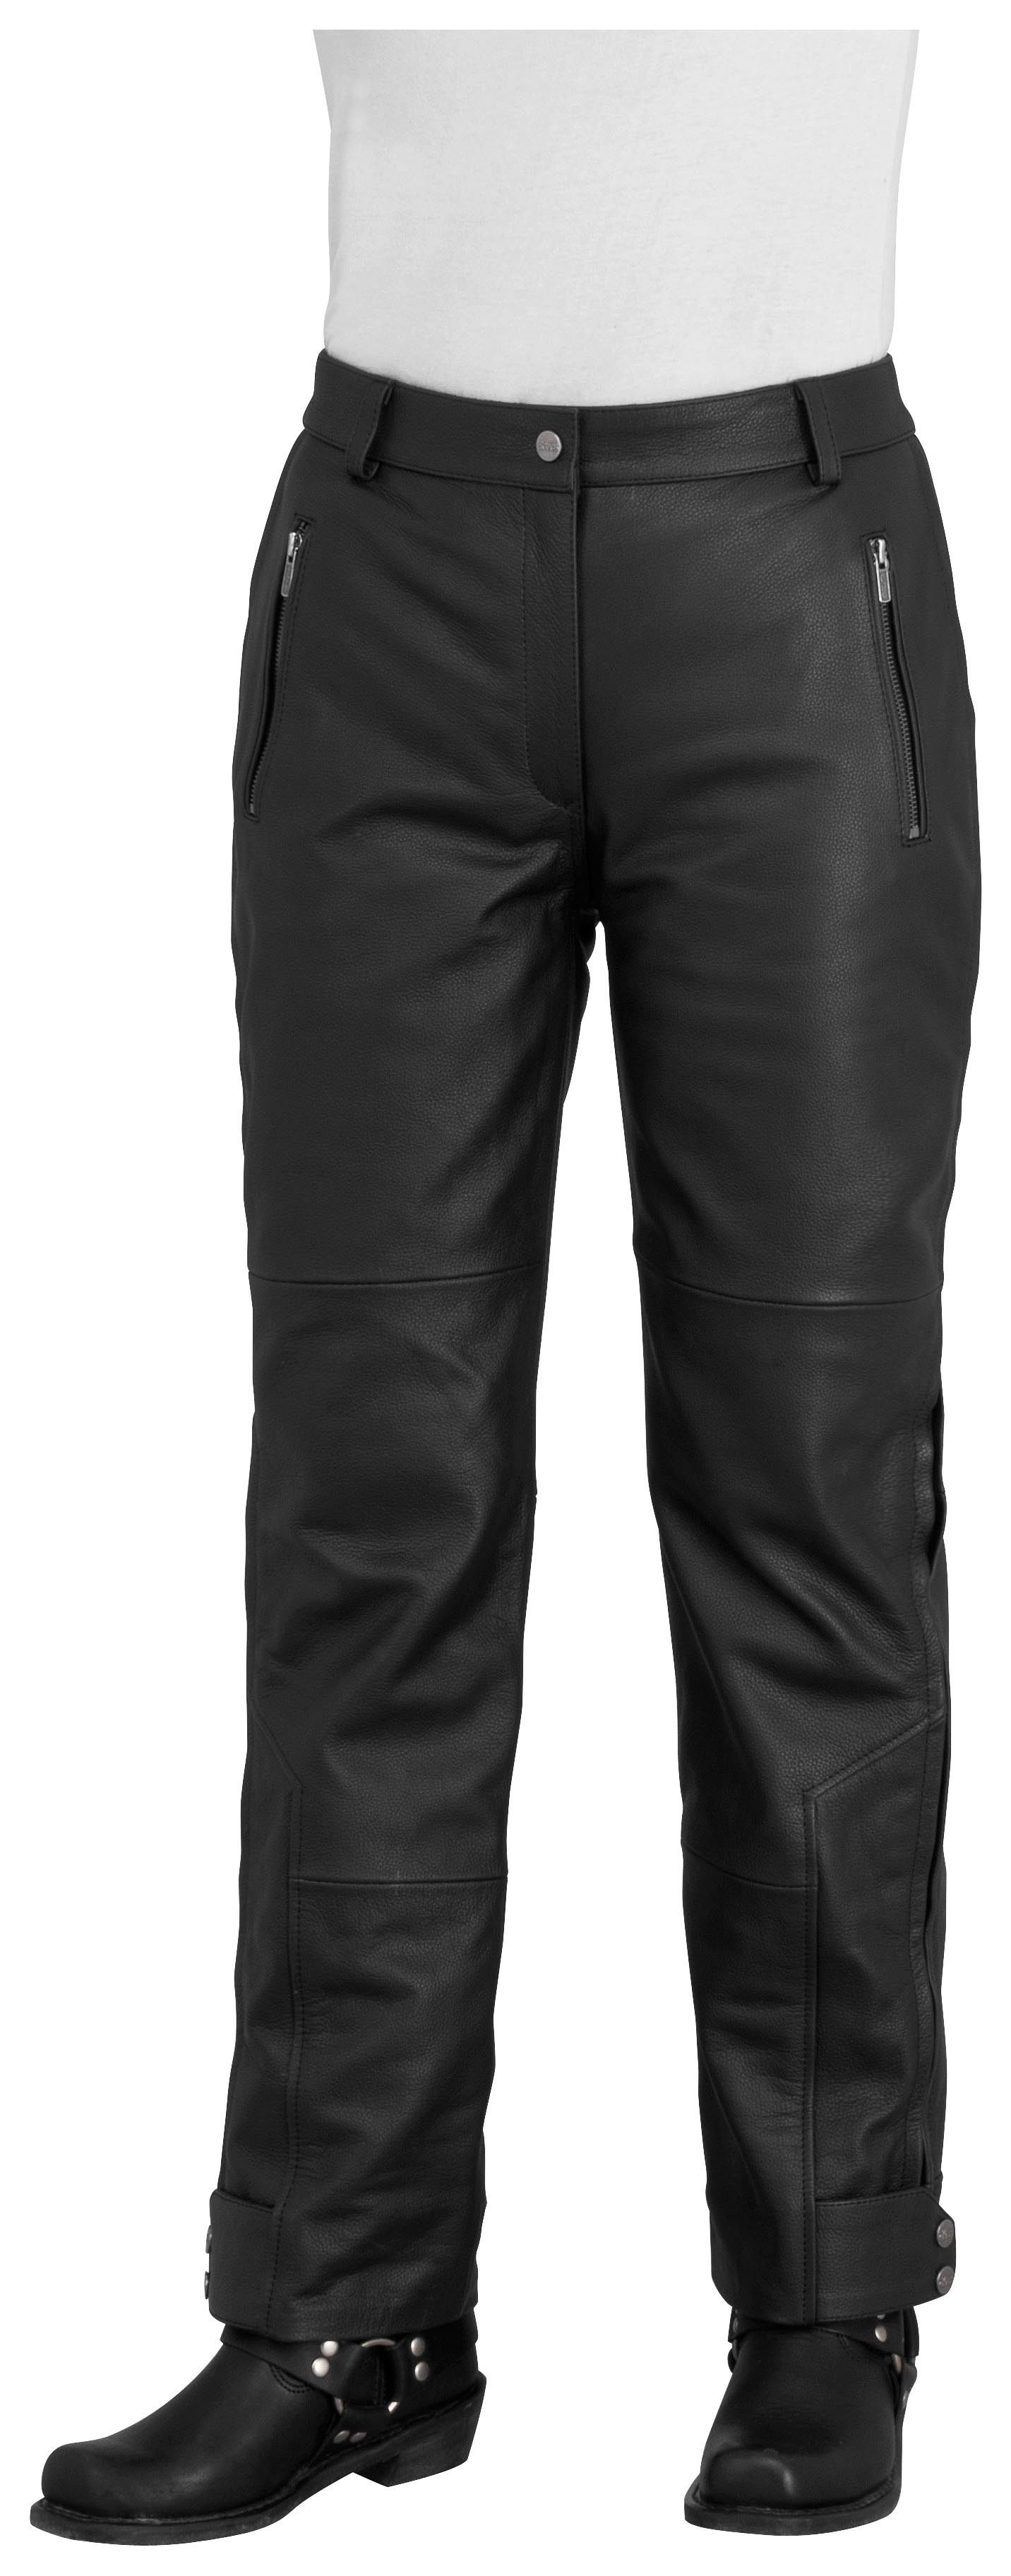 River Road Sierra Cool Women S Leather Pants Size 4 Only